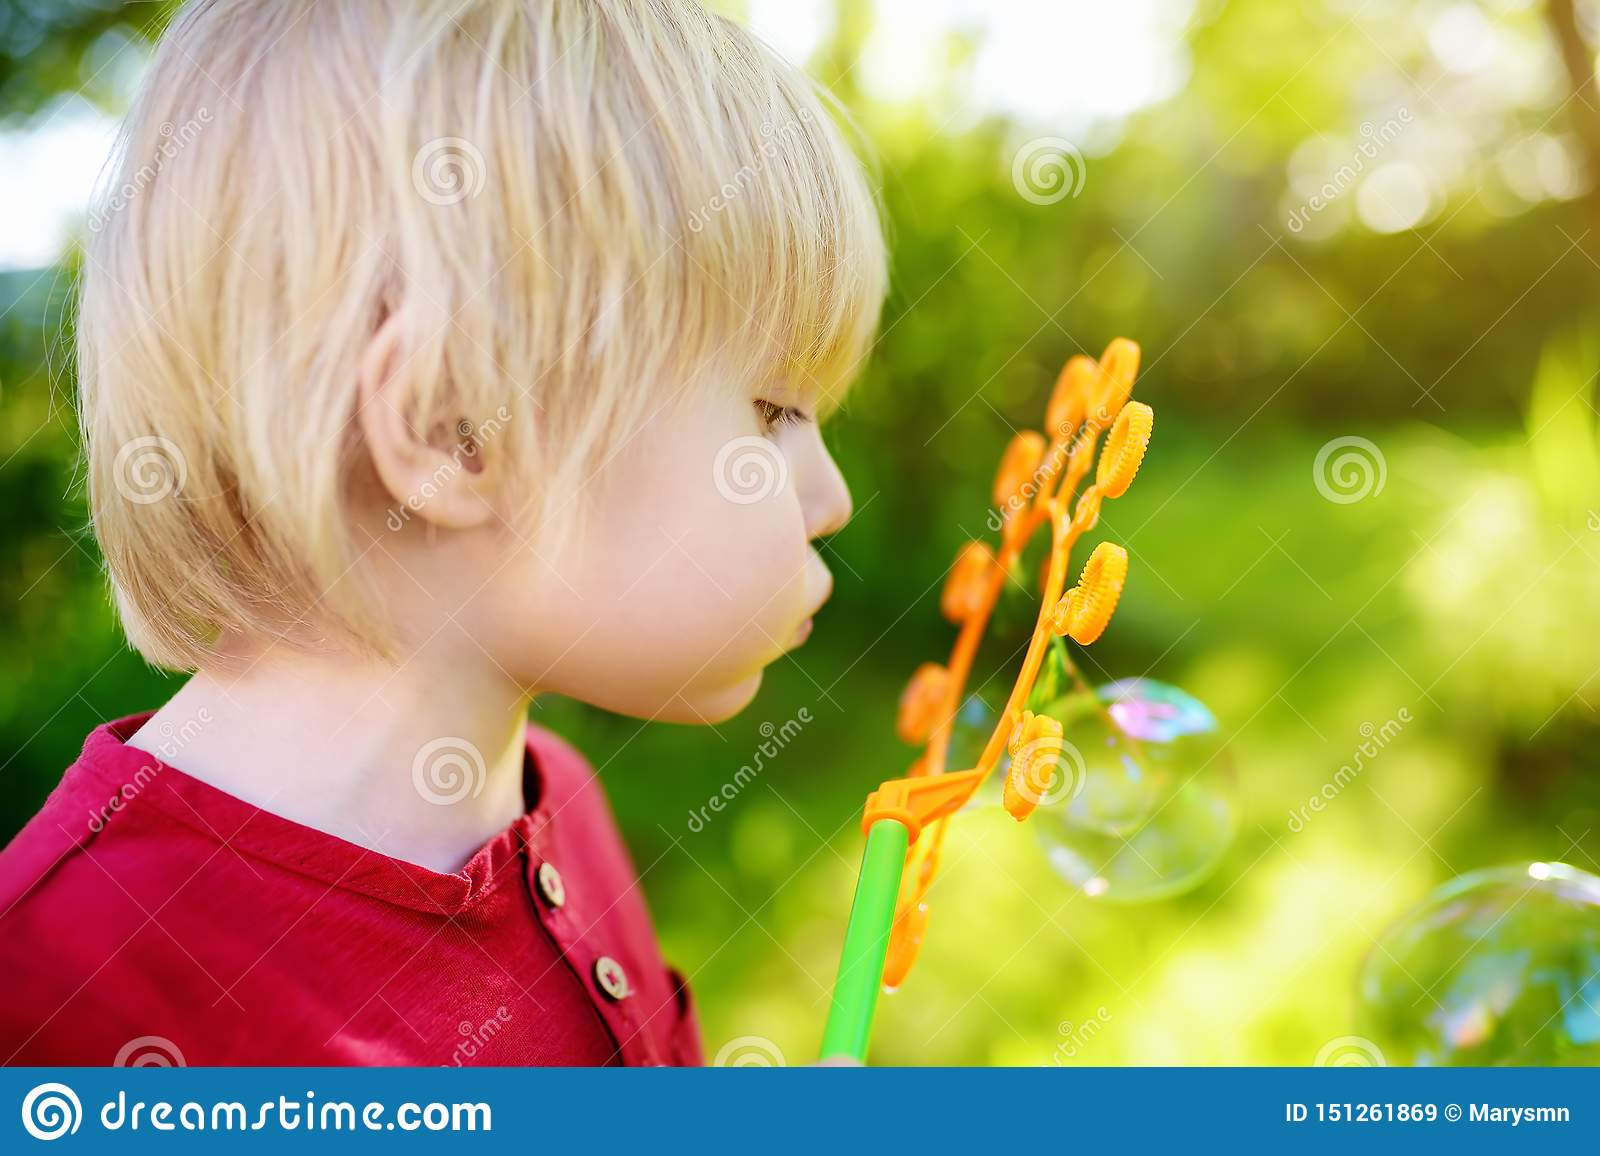 Cute little boy is playing with big bubbles outdoor. Child is blowing big and small bubbles simultaneously